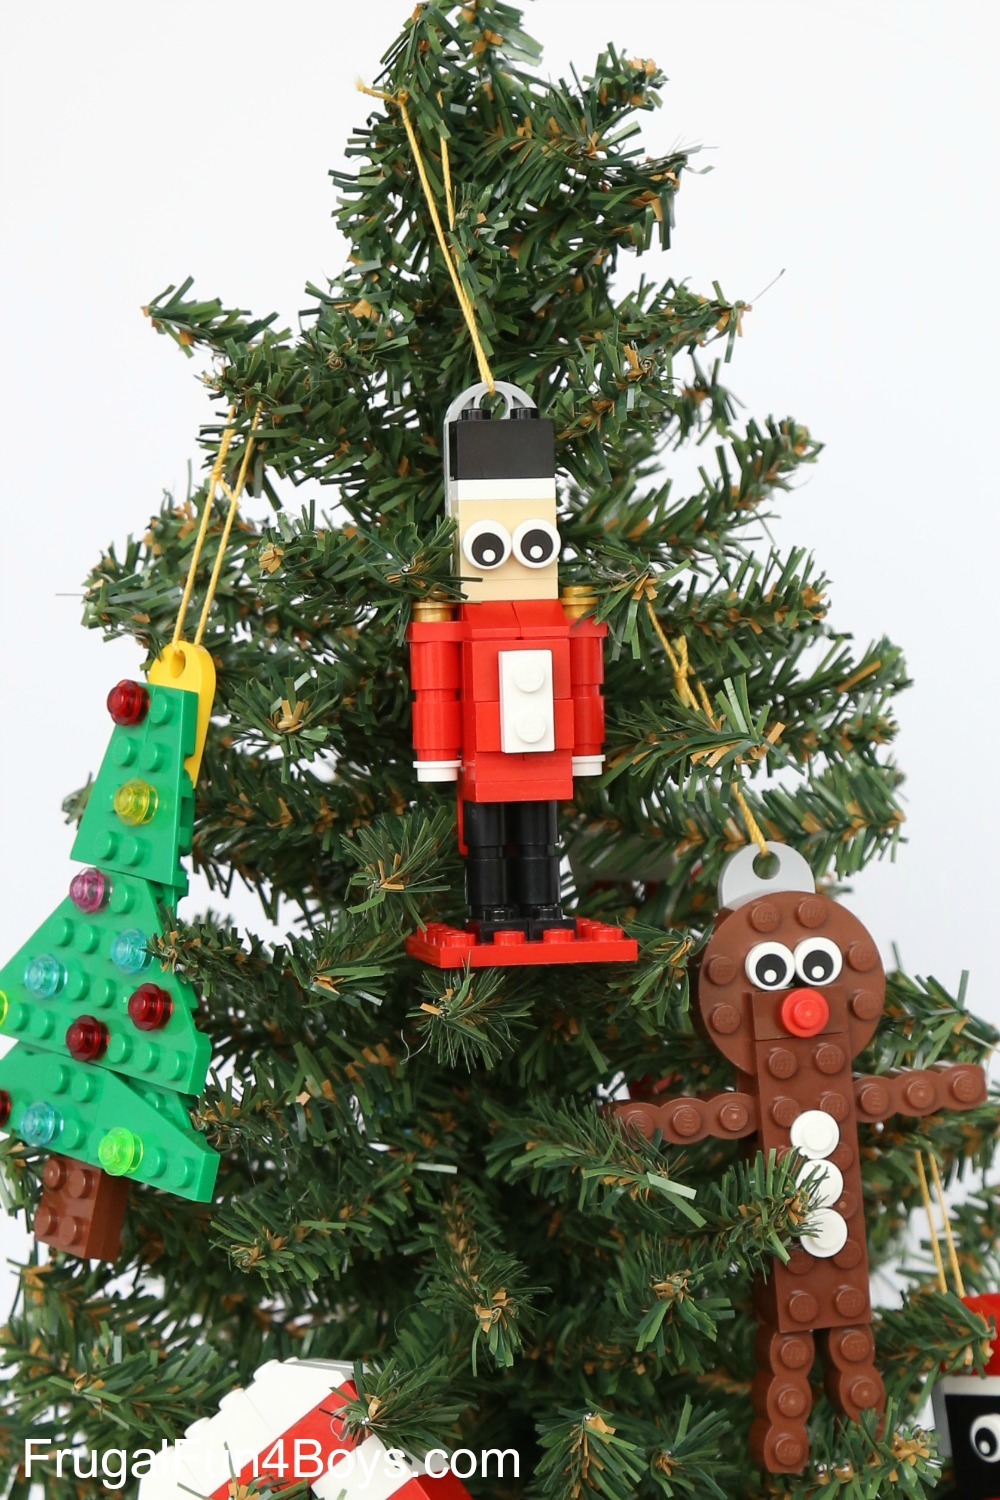 How To Build A Lego Nutcracker Christmas Ornament Frugal Fun For